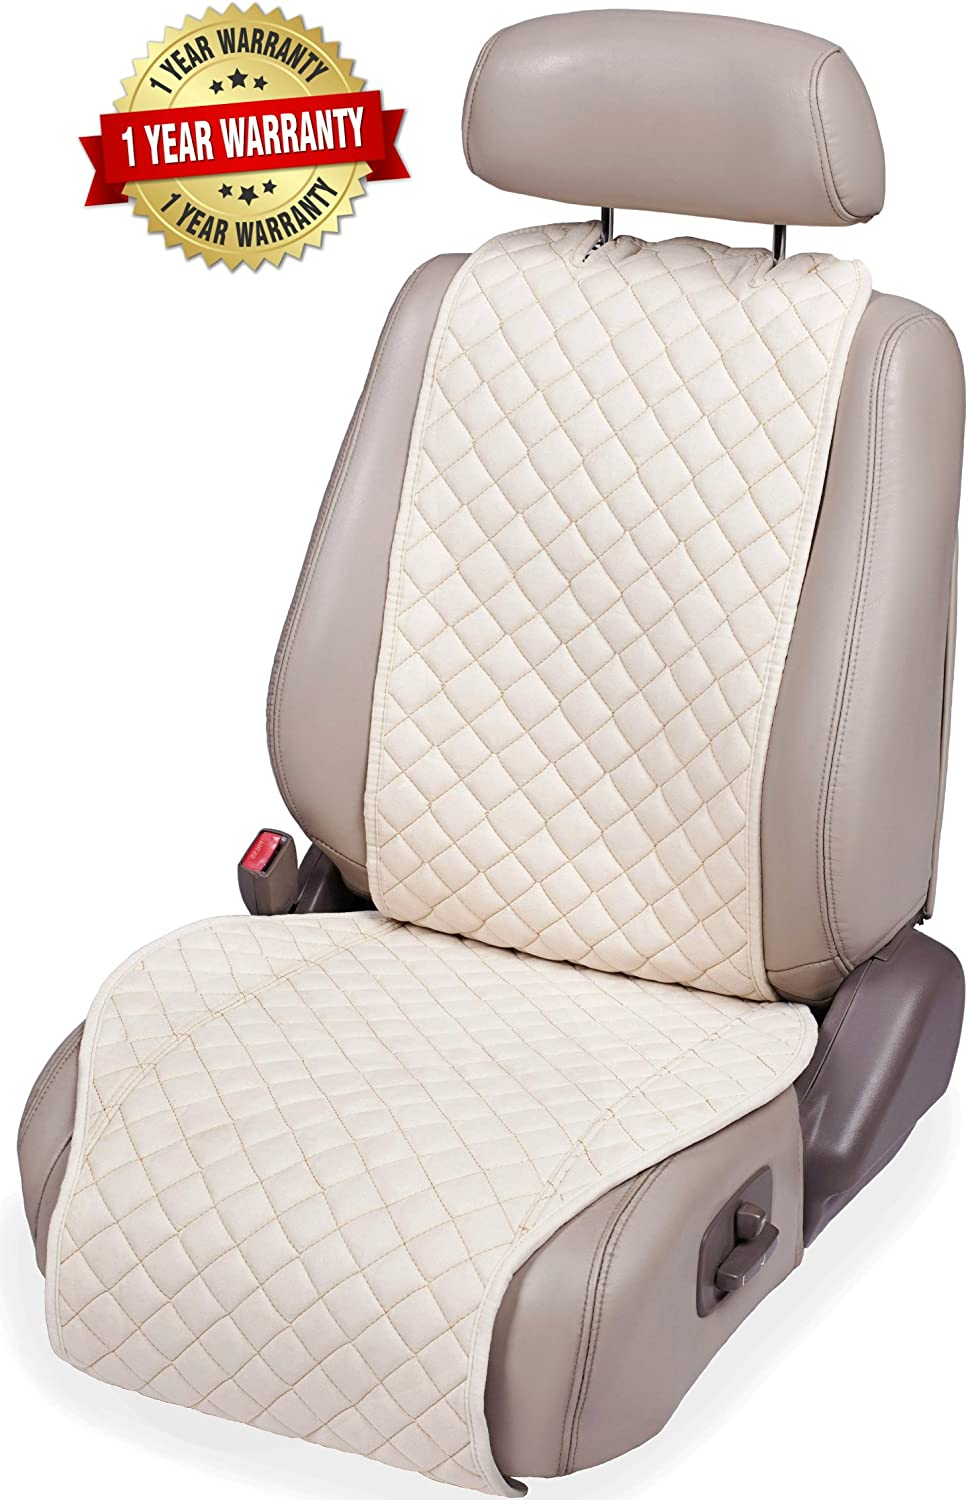 1-pc Boys Girls Premium Covers for Women or Van SUV Car Seat Cushion Fits Most Cars Car Seat Protector Men Truck IVICY Car Seat Cover Protector Cushion